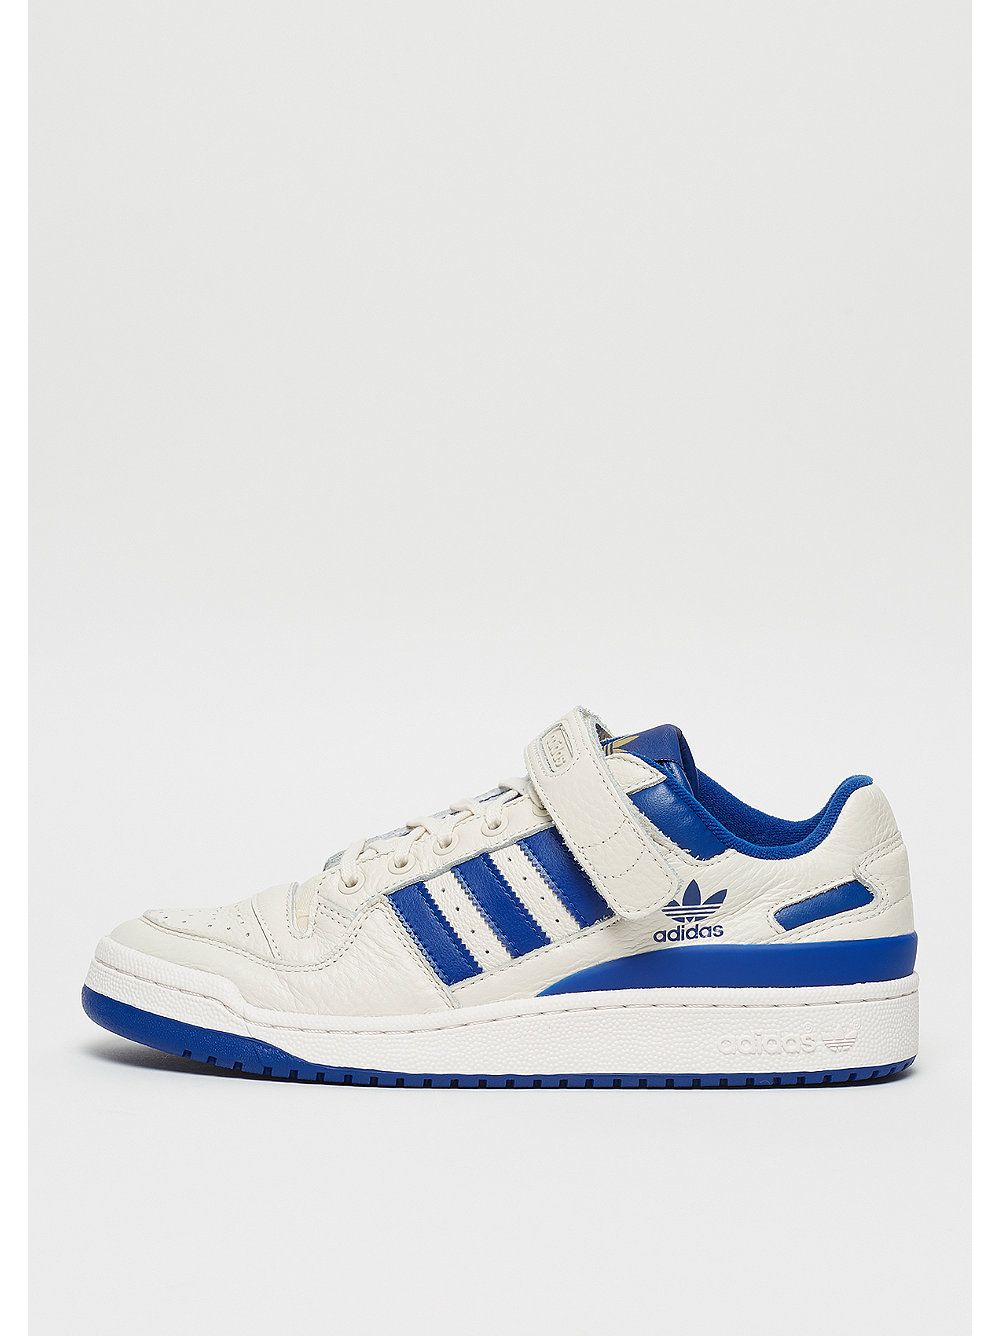 adidas white gold Forum royal Lo chalk white/ collegiate royal/ gold bei SNIPES bestellen! 2035e4b - omkostningertil.website